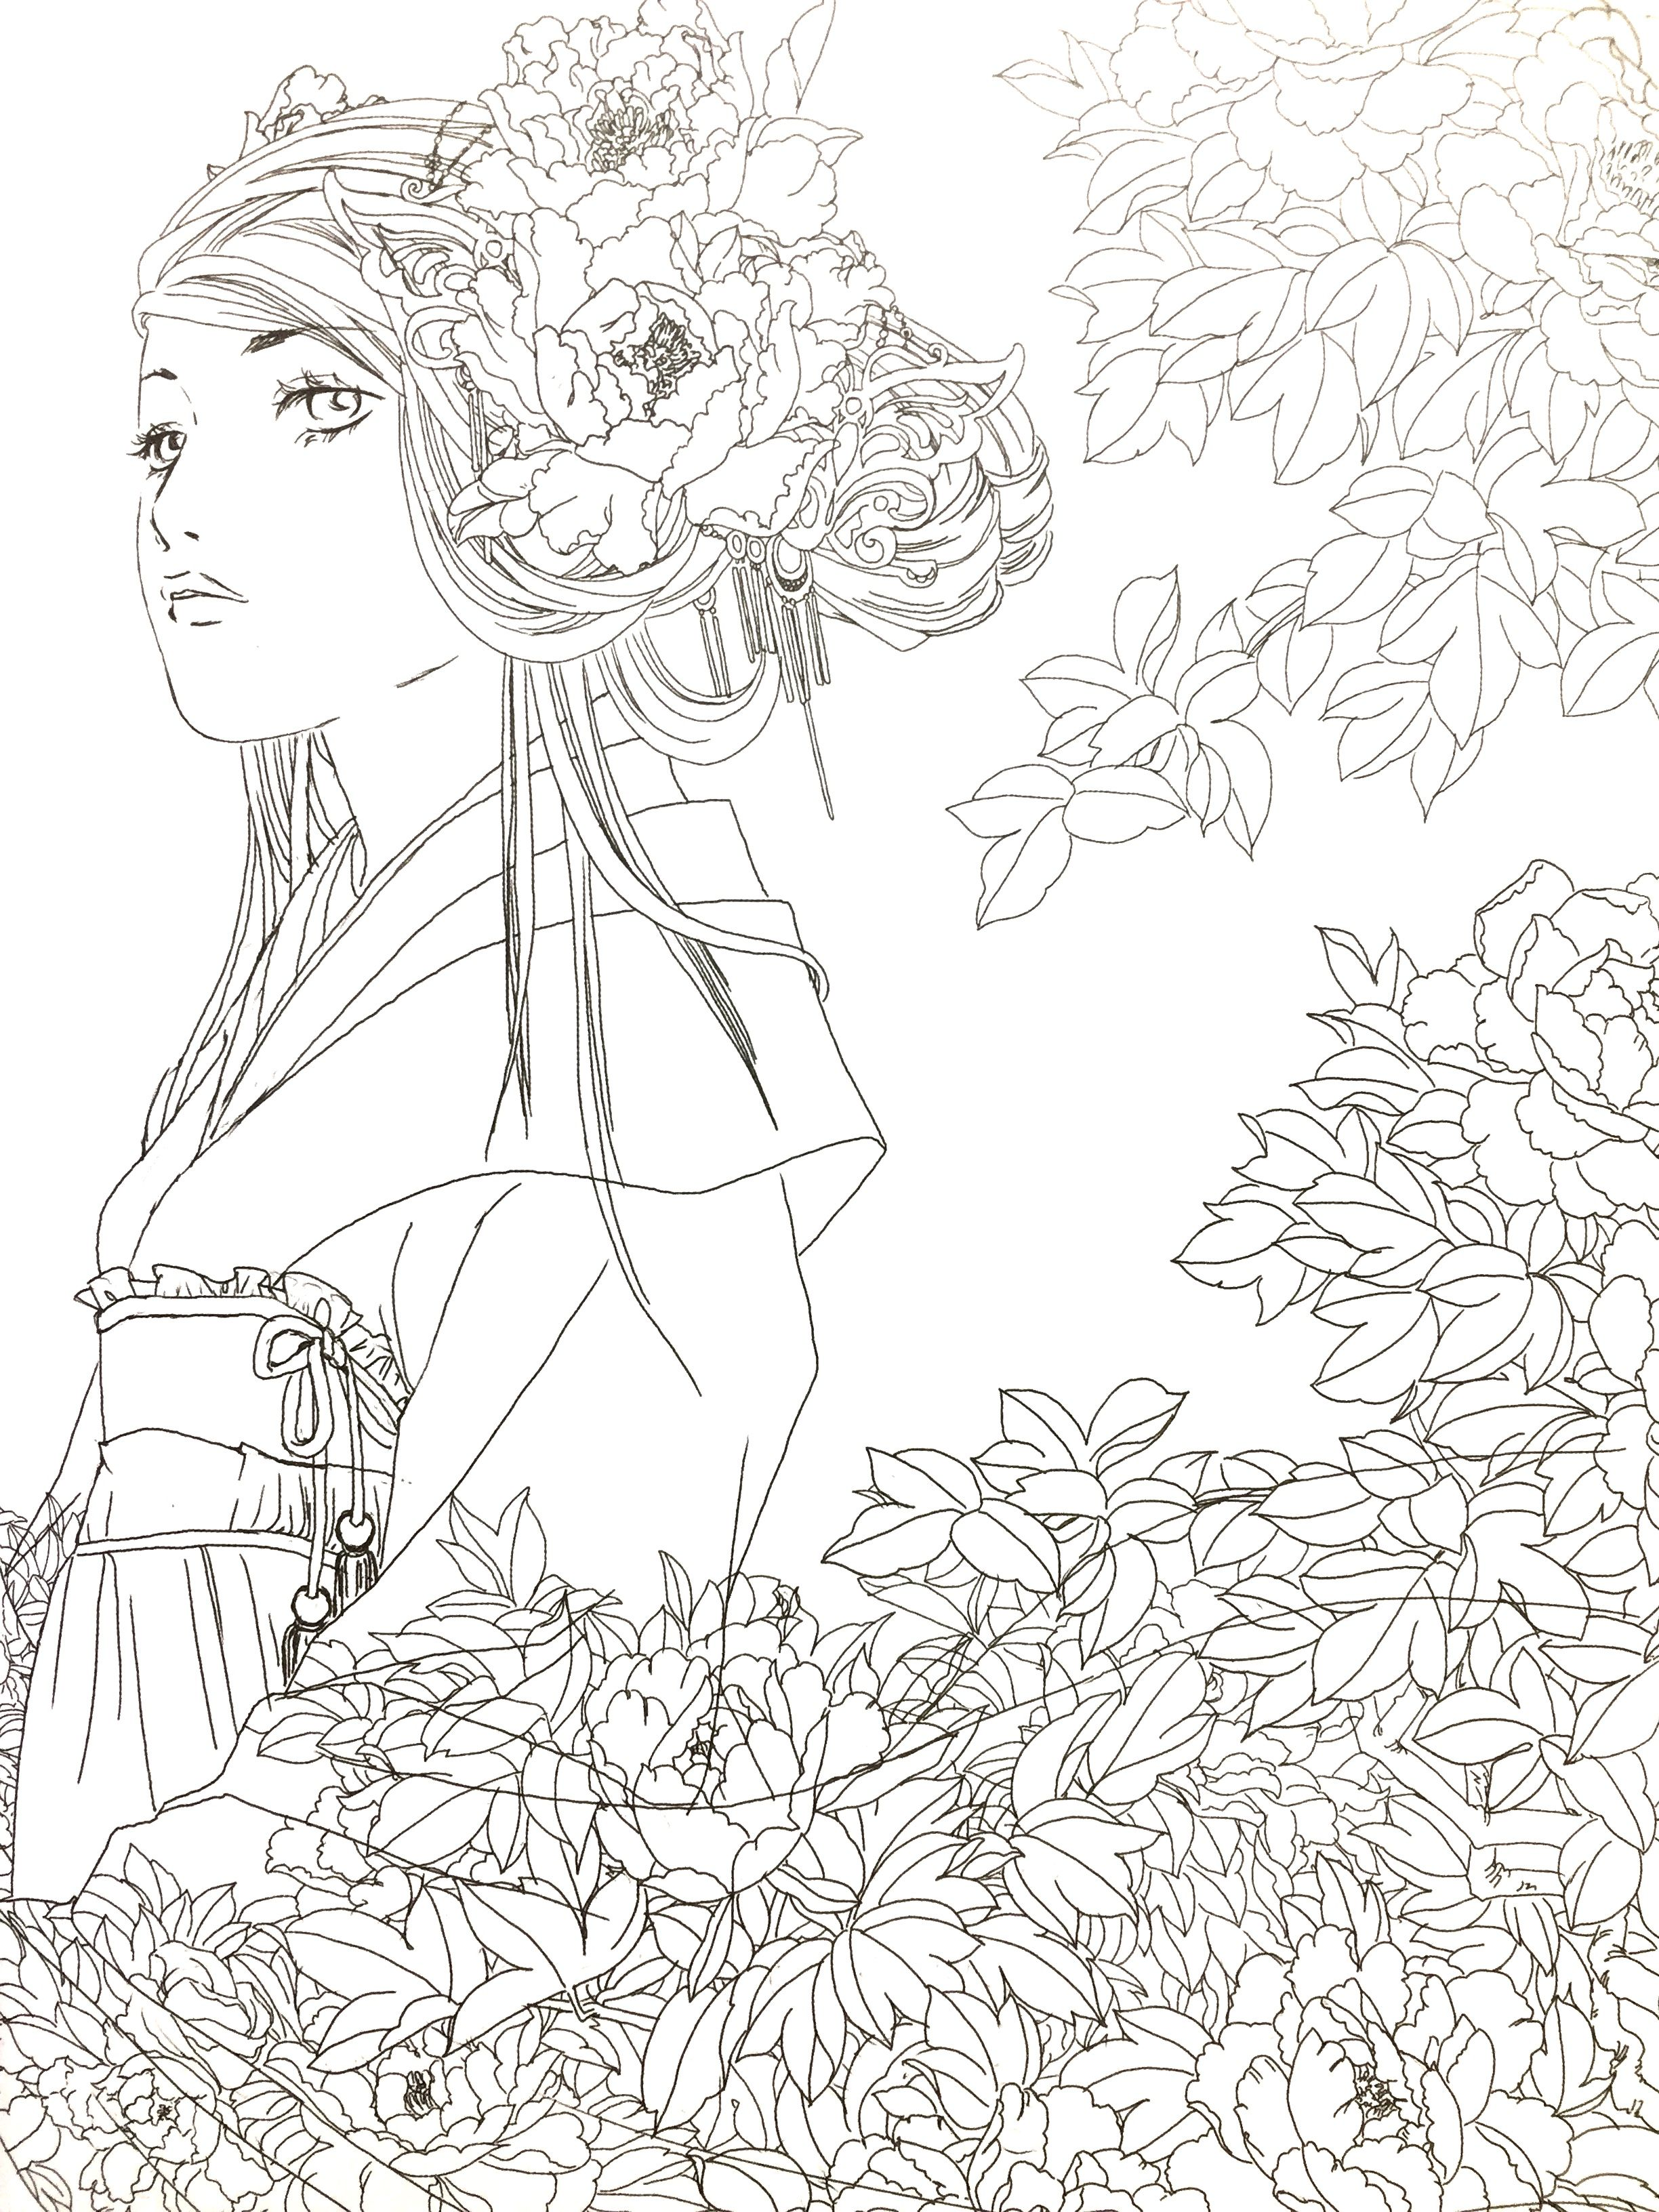 Hers Chinese Antiquity Coloring Book Etsy Coloring Books Cute Coloring Pages Color Pencil Art